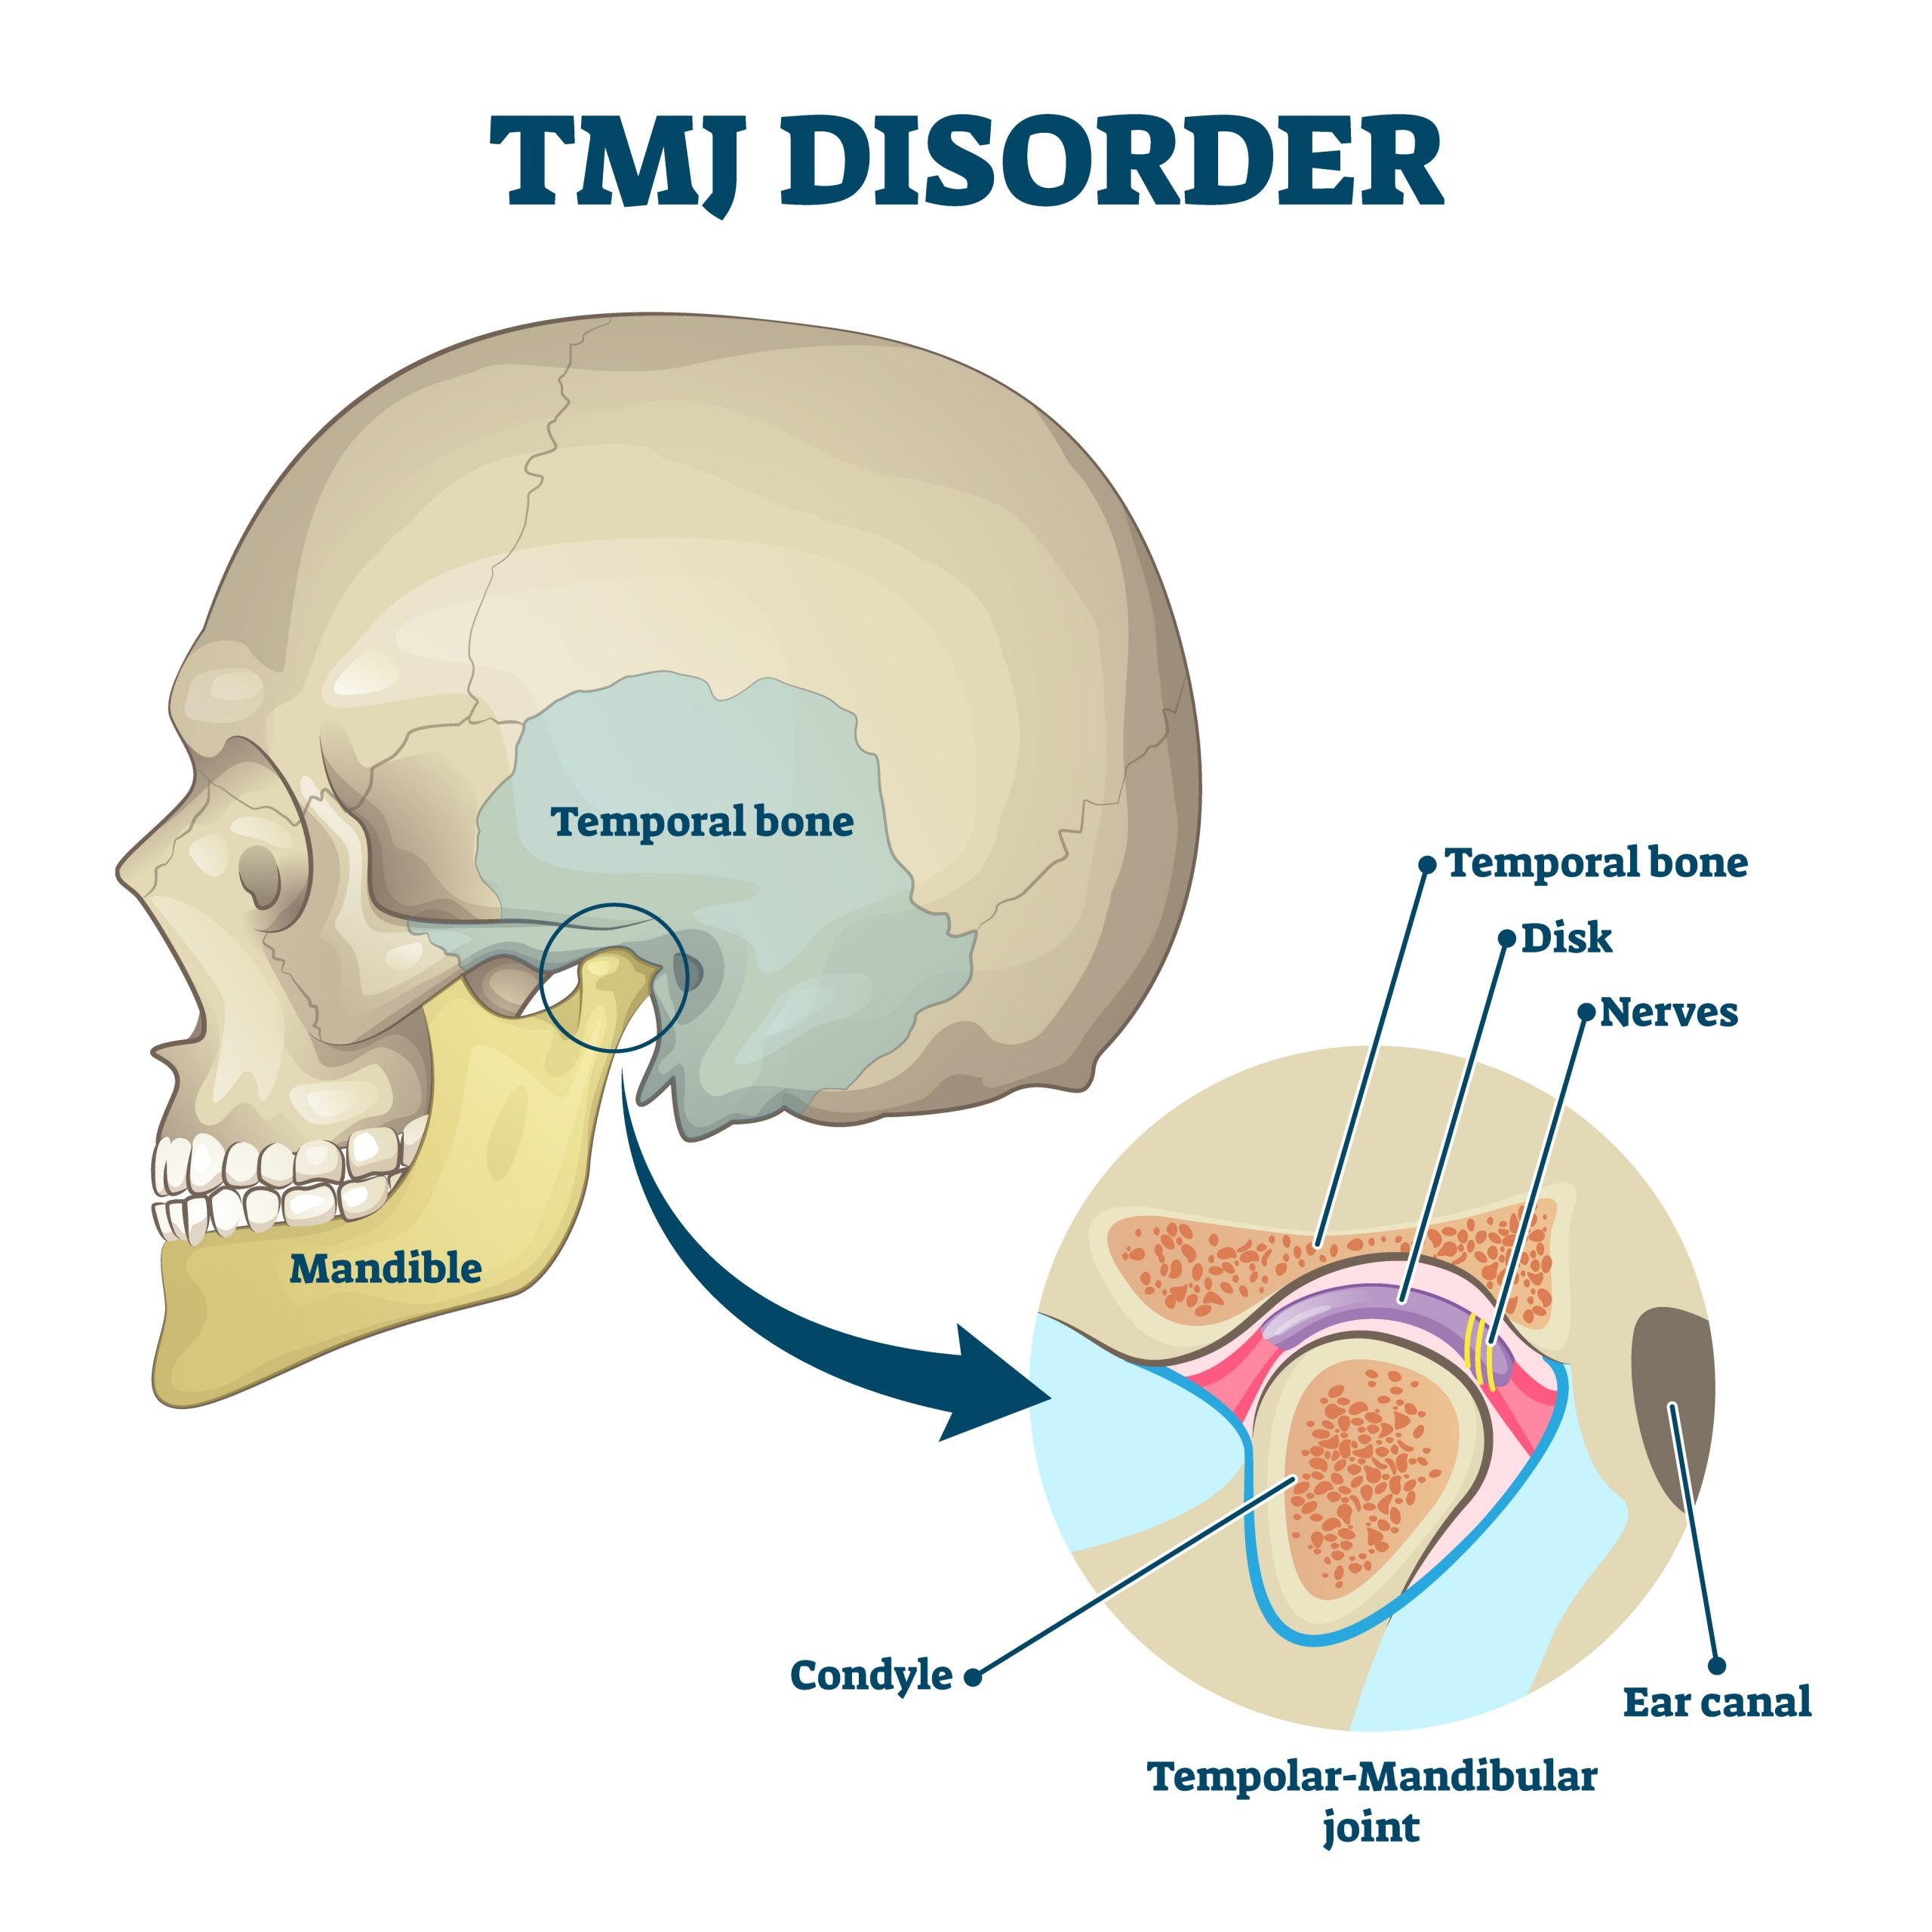 TMJ Disorder diagram